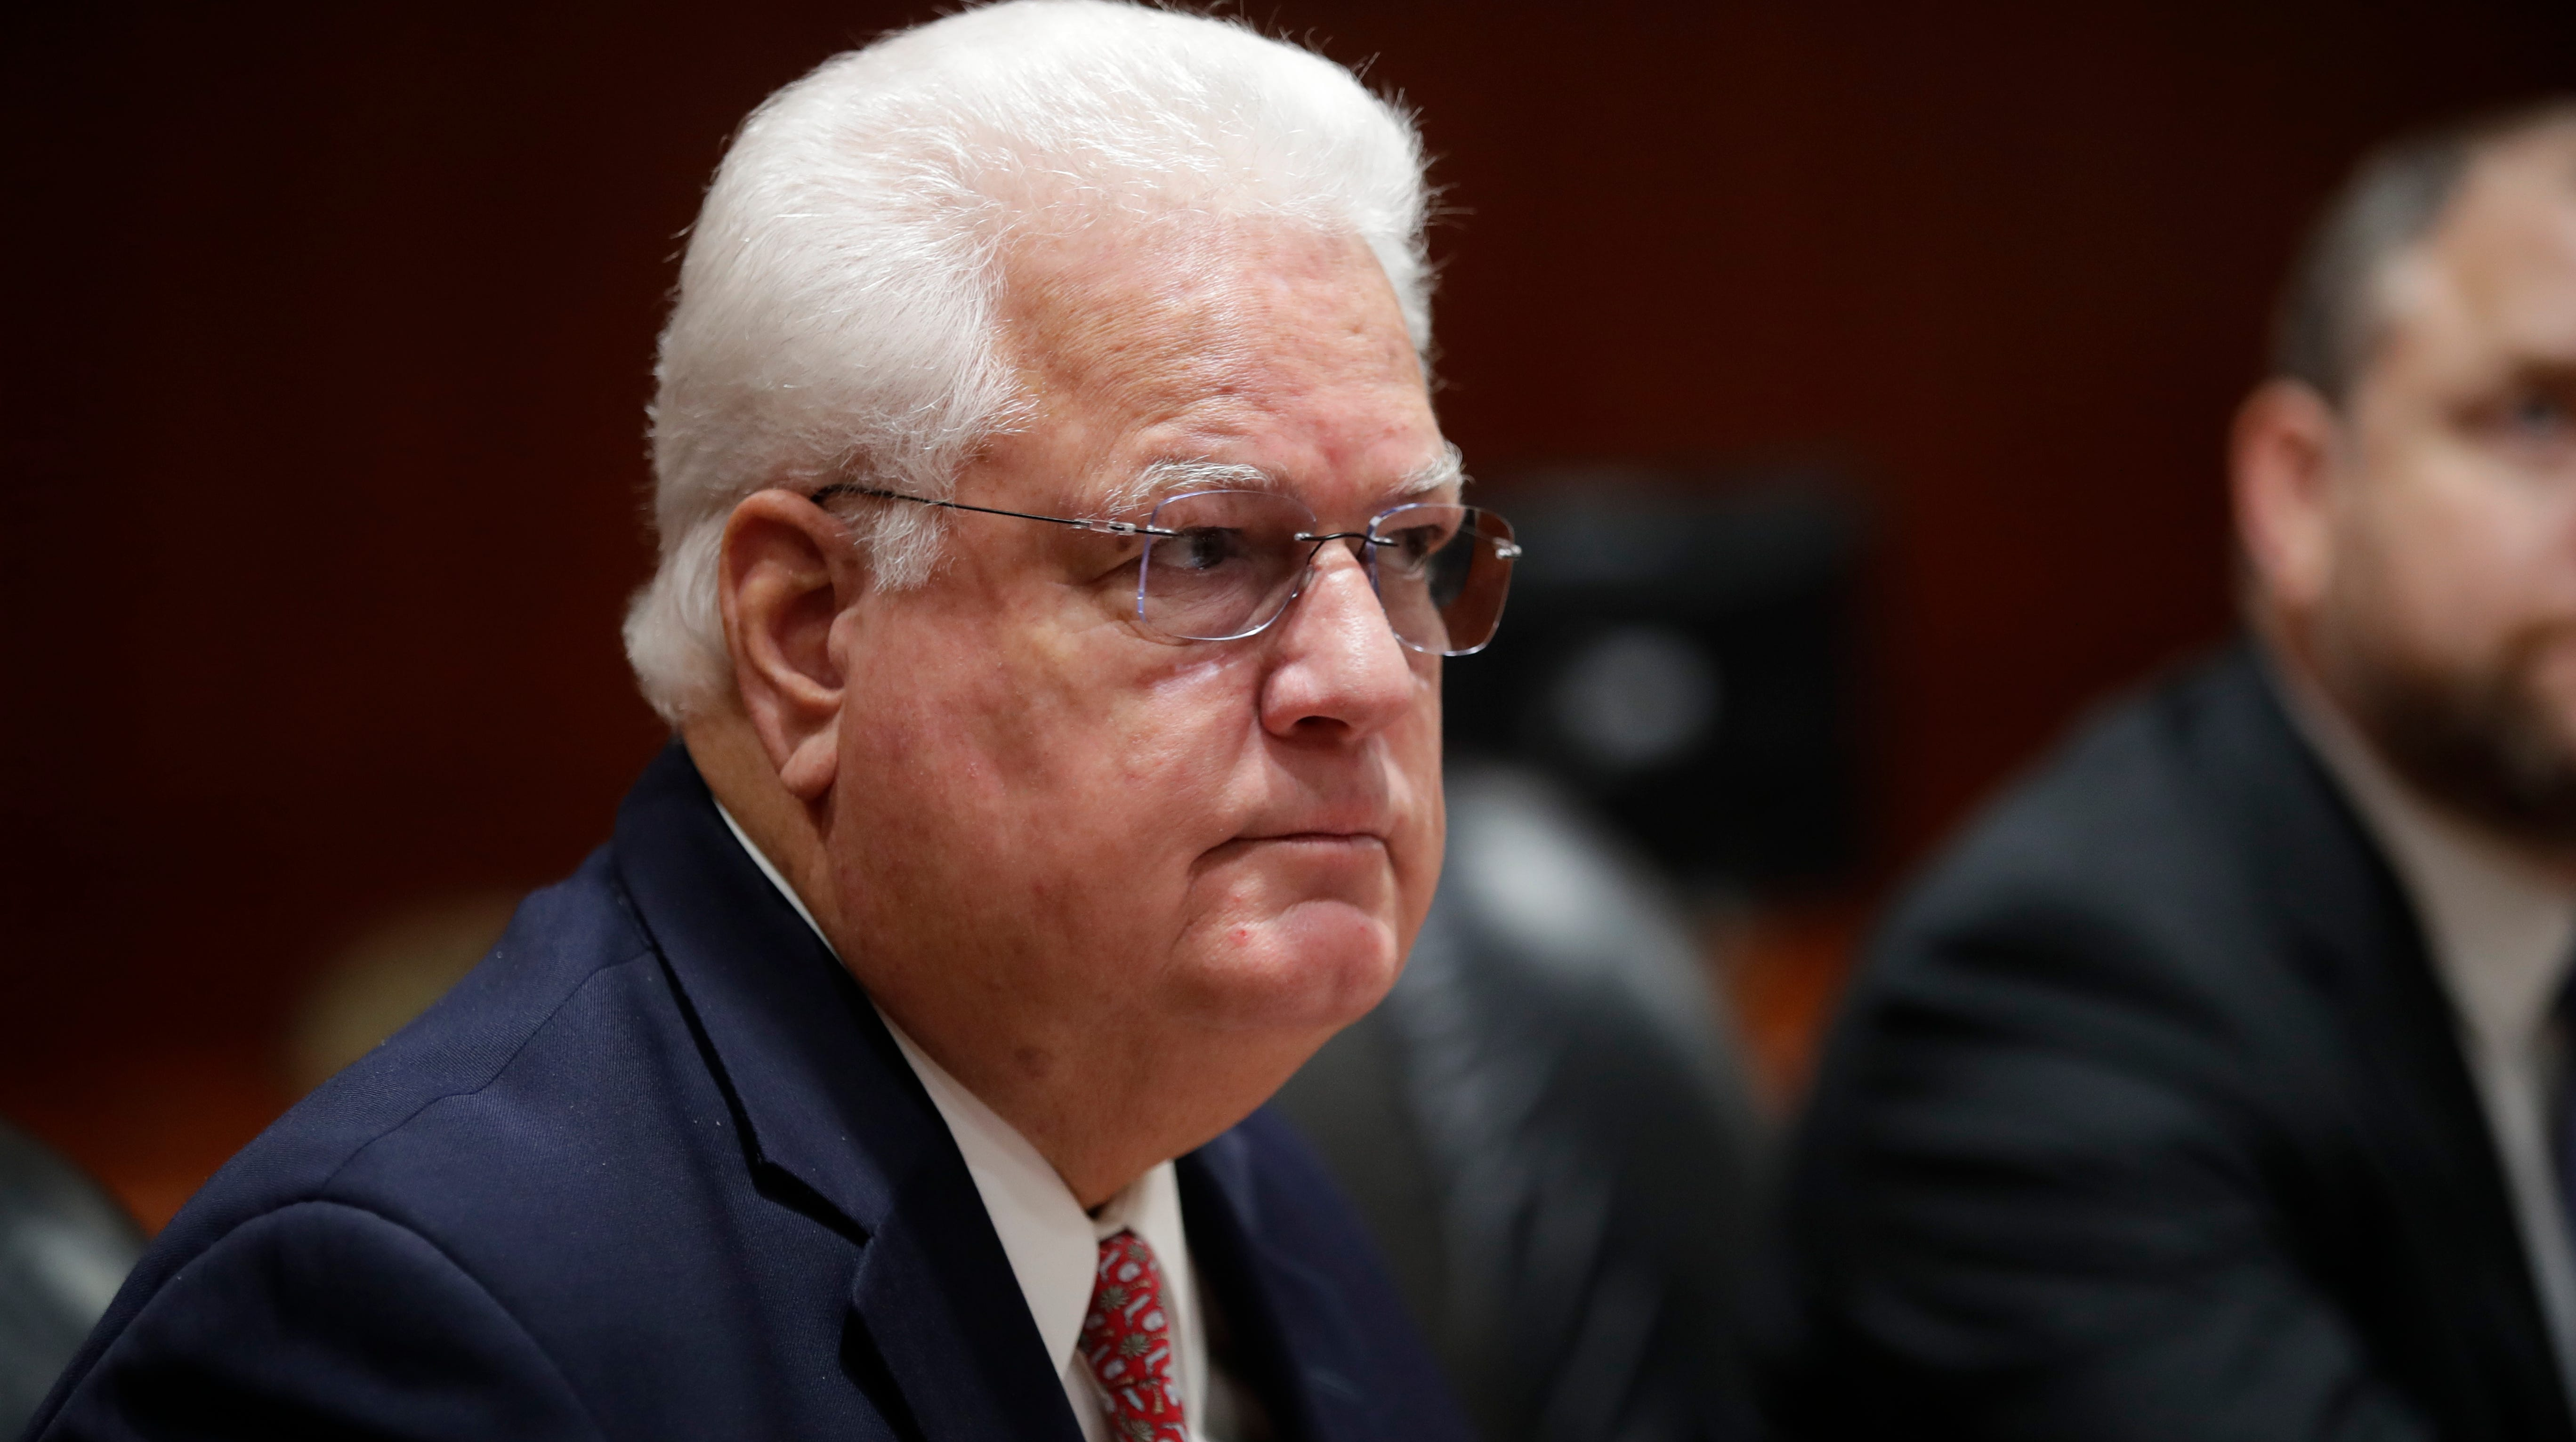 Florida Secretary of State Ken Detzner speaks during the certification of the 2018 general and special election results at the Florida State Capitol Tuesday, Nov. 20, 2018.